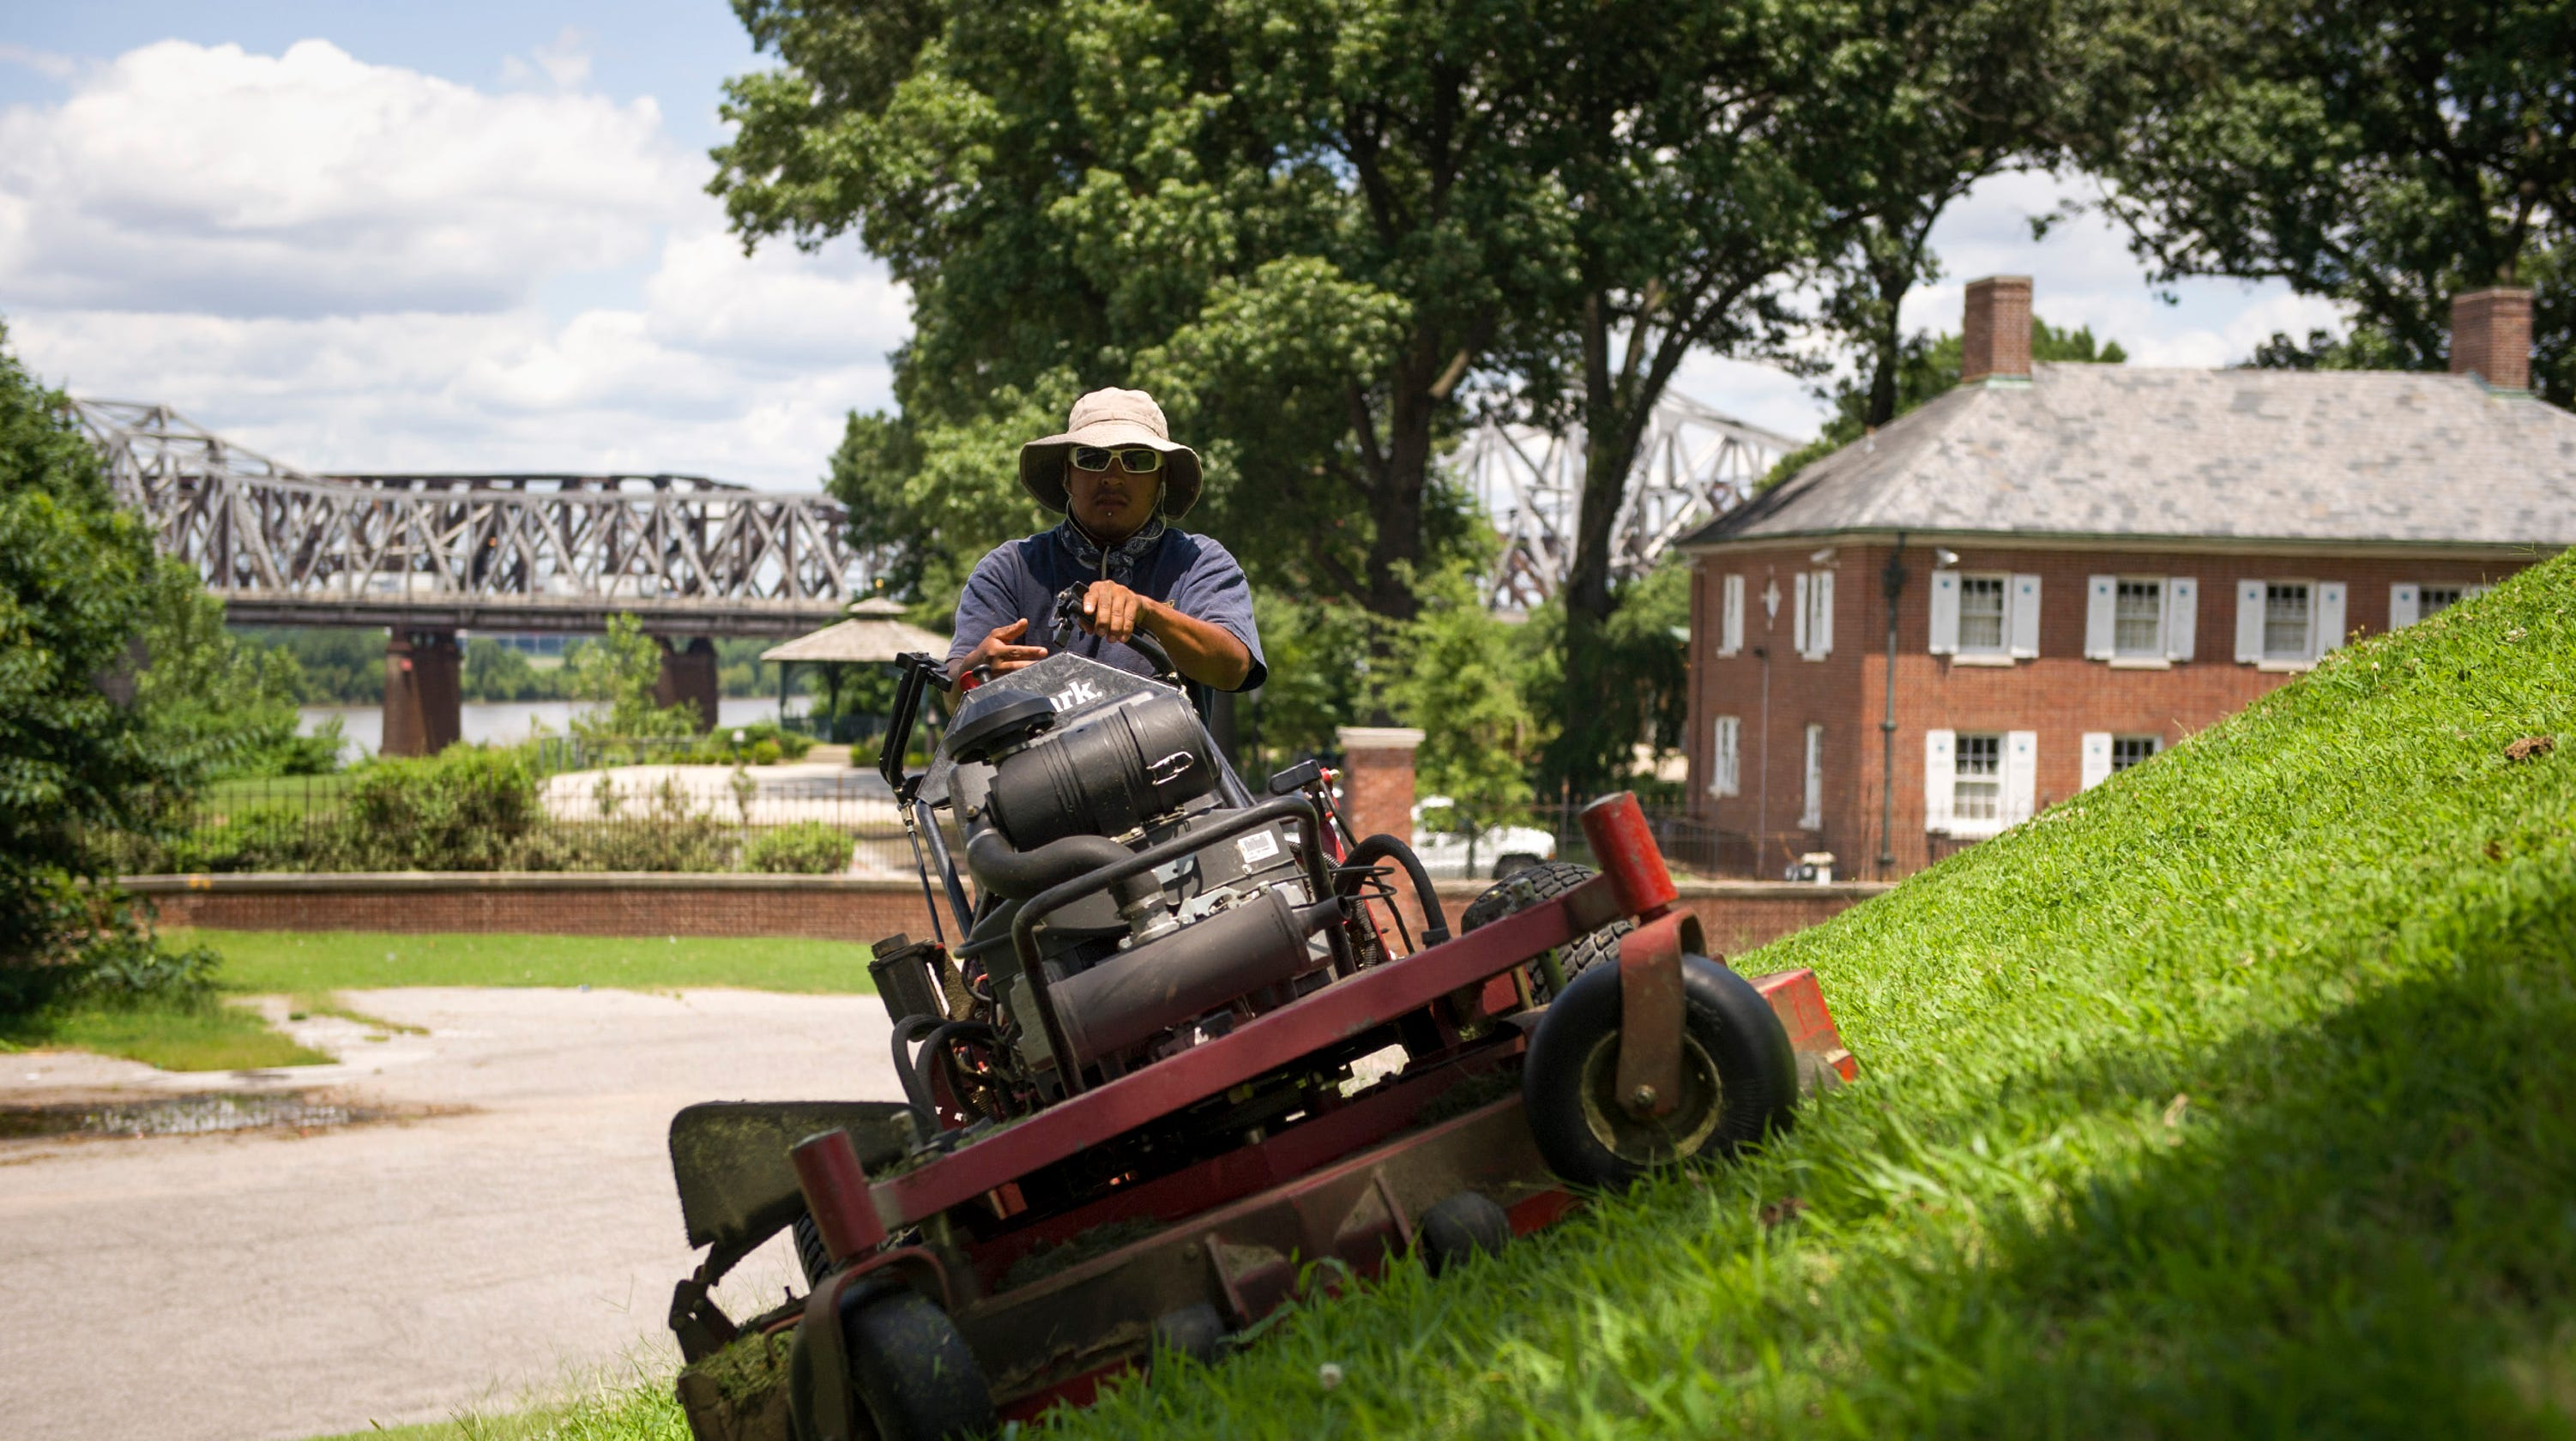 Greenpal In Memphis Uber Of Lawn Care Launches In Shelby